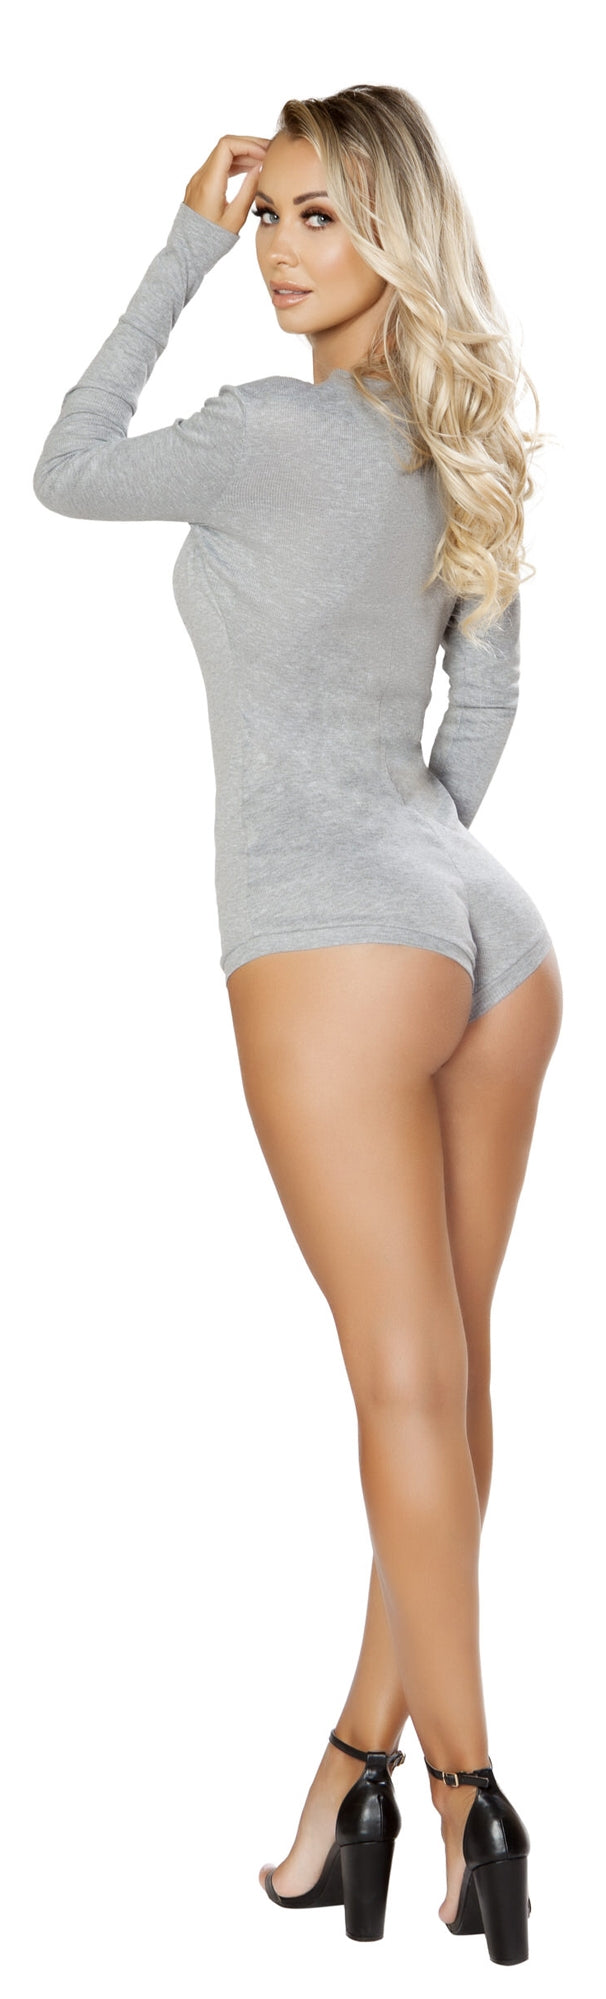 RM-LI211 Cozy and Comfy Sweater Romper grey back